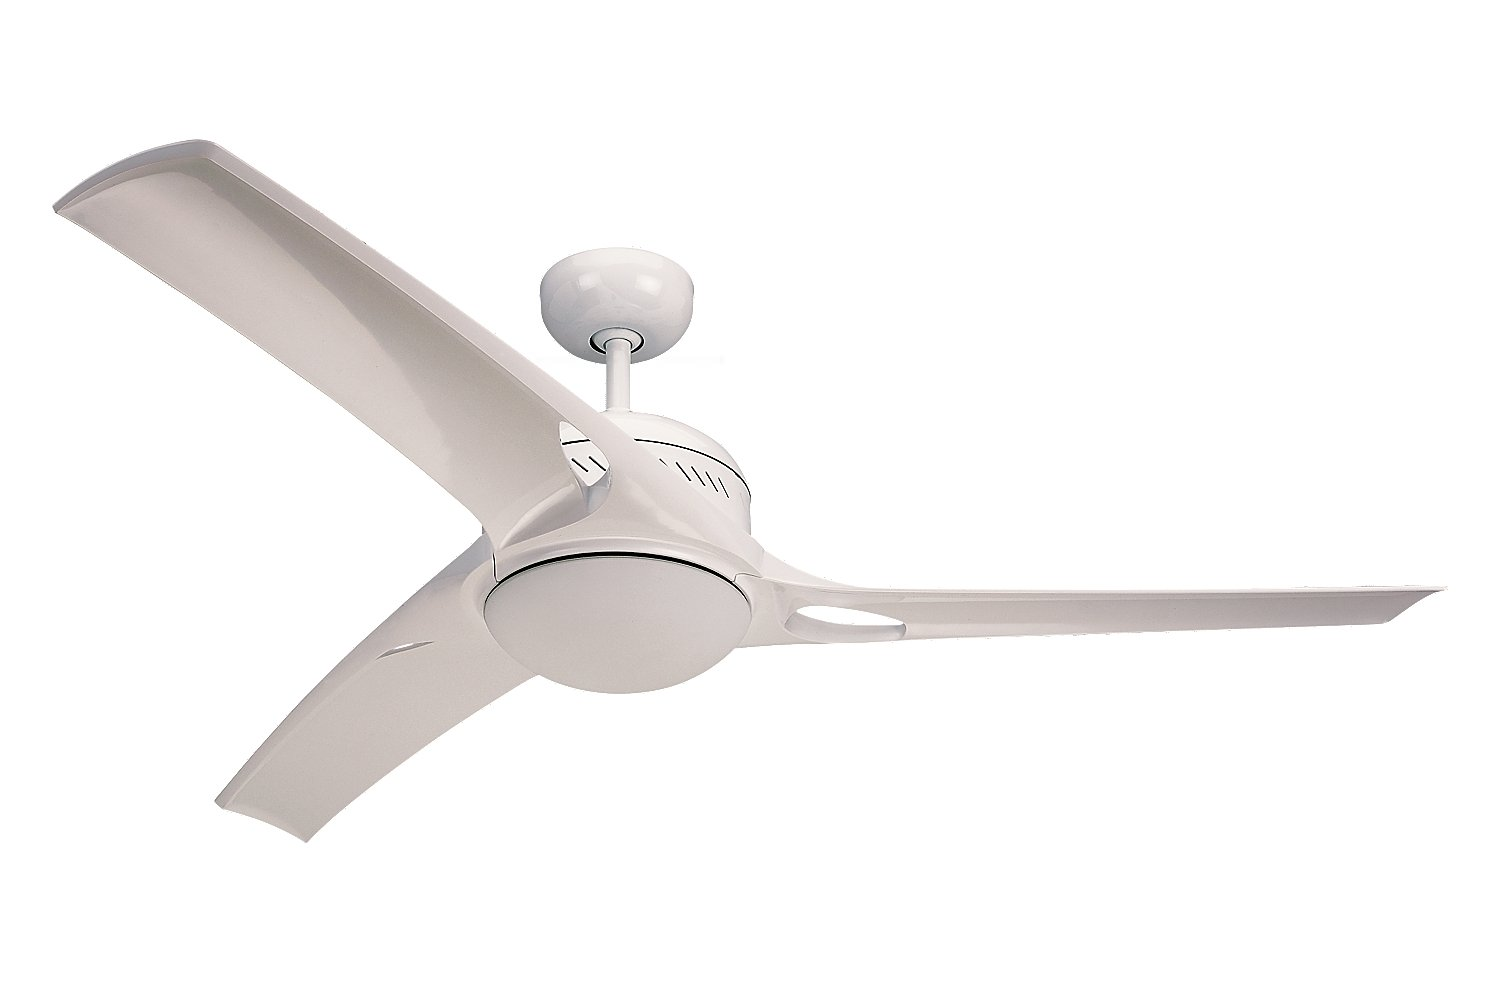 Monte carlo 3mo52who l mach one ceiling fan with remote 52 white monte carlo 3mo52who l mach one ceiling fan with remote 52 white indoor ceiling fans with lighting and remote amazon aloadofball Image collections